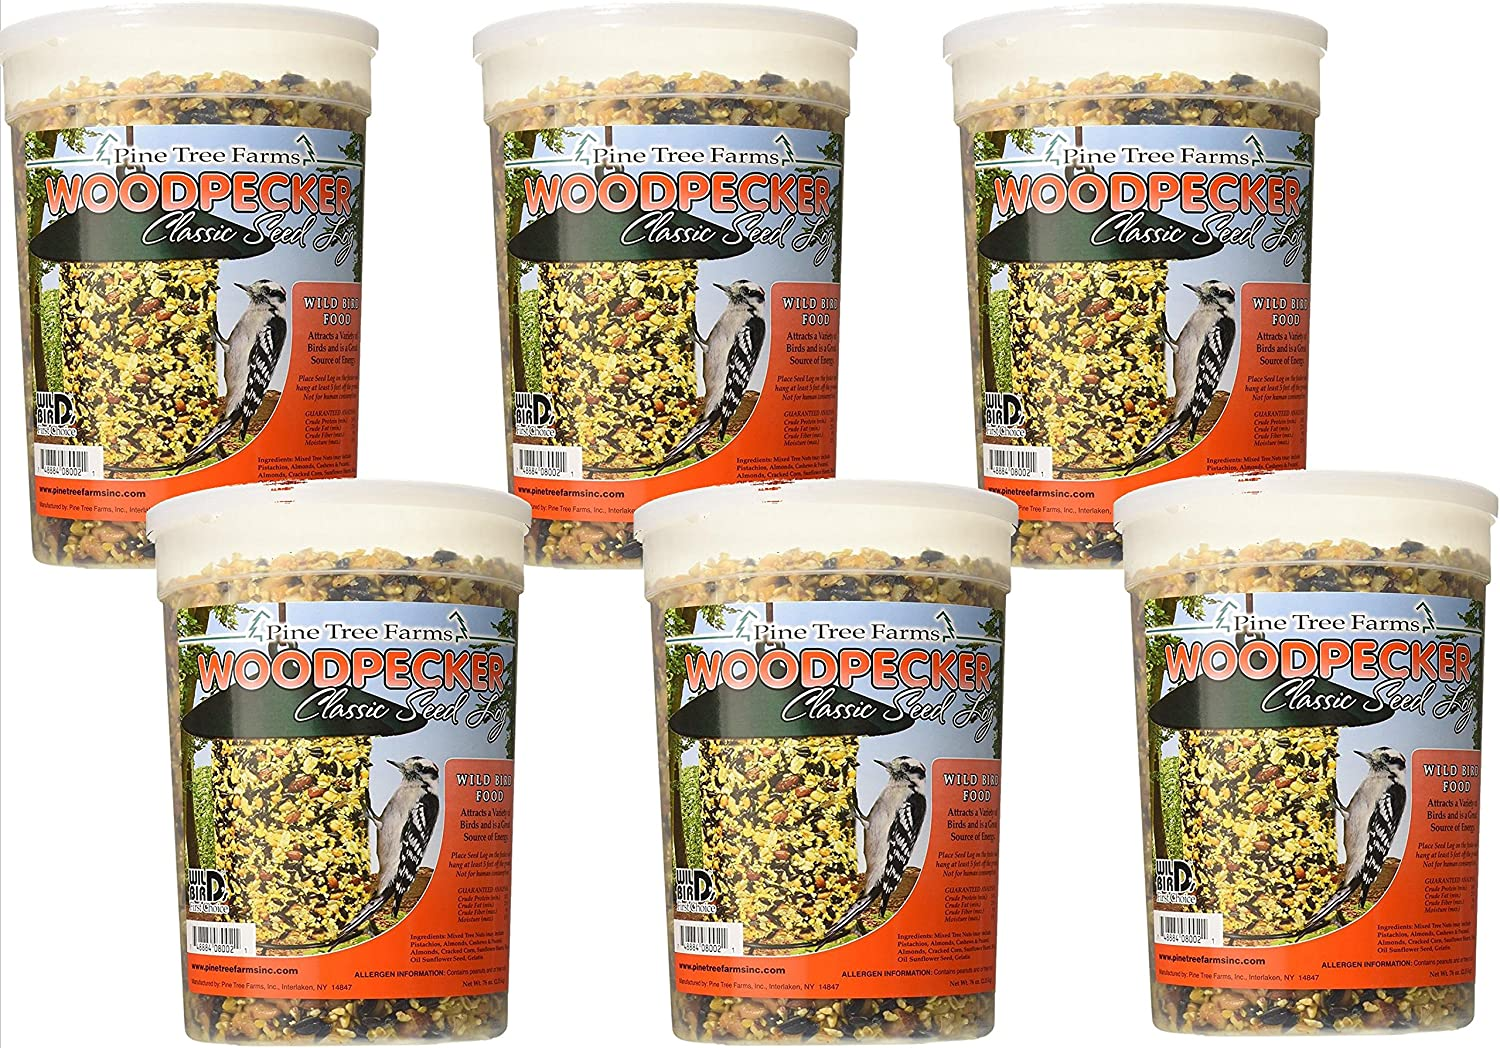 6 Pack Pine Tree Farms Woodpecker Seed Log 5 LB 8002 Made in USA